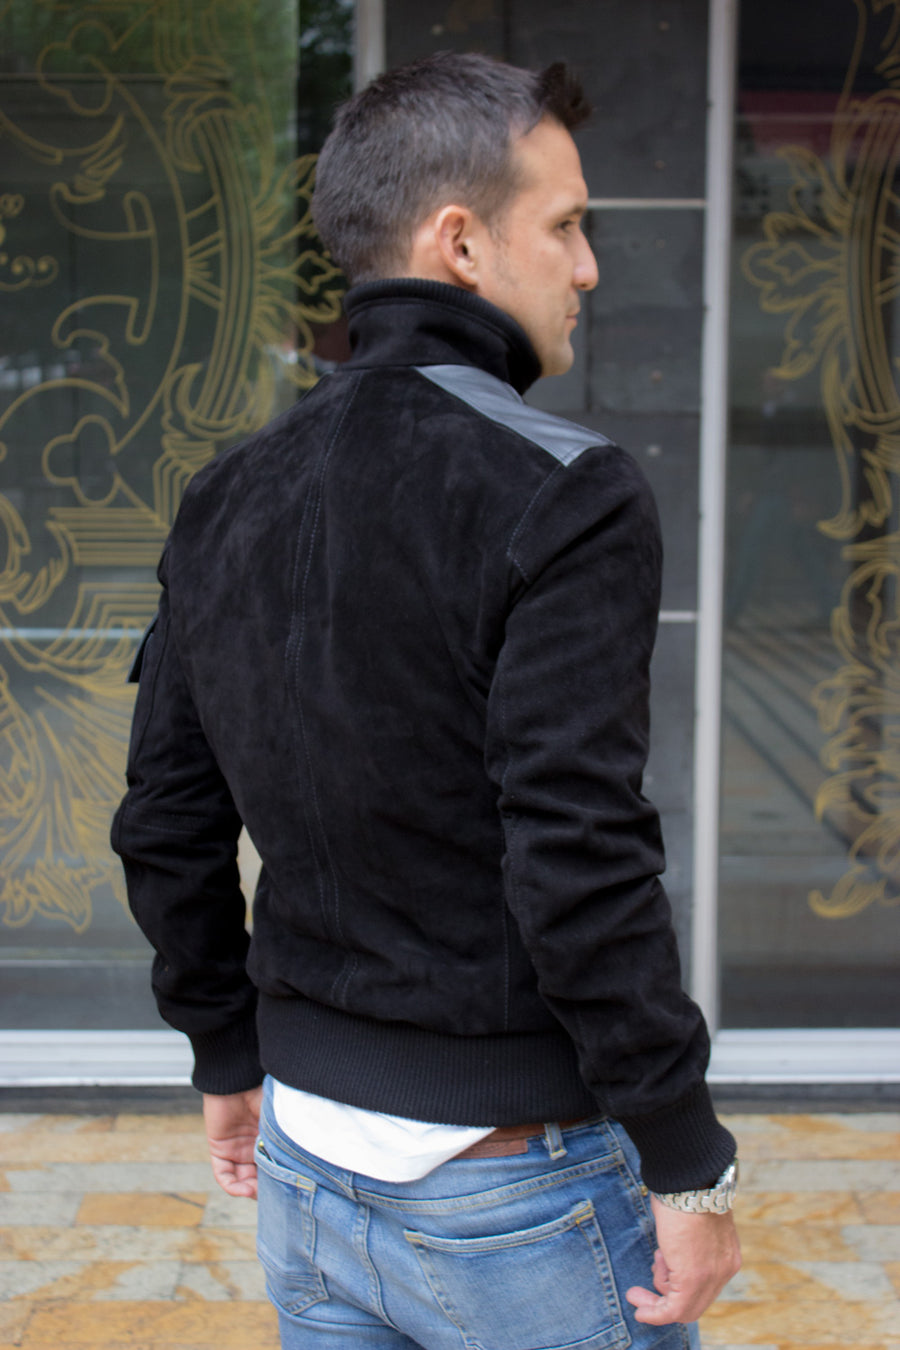 BOSS Black Suede Jacket with Leather pockets Red Zipper